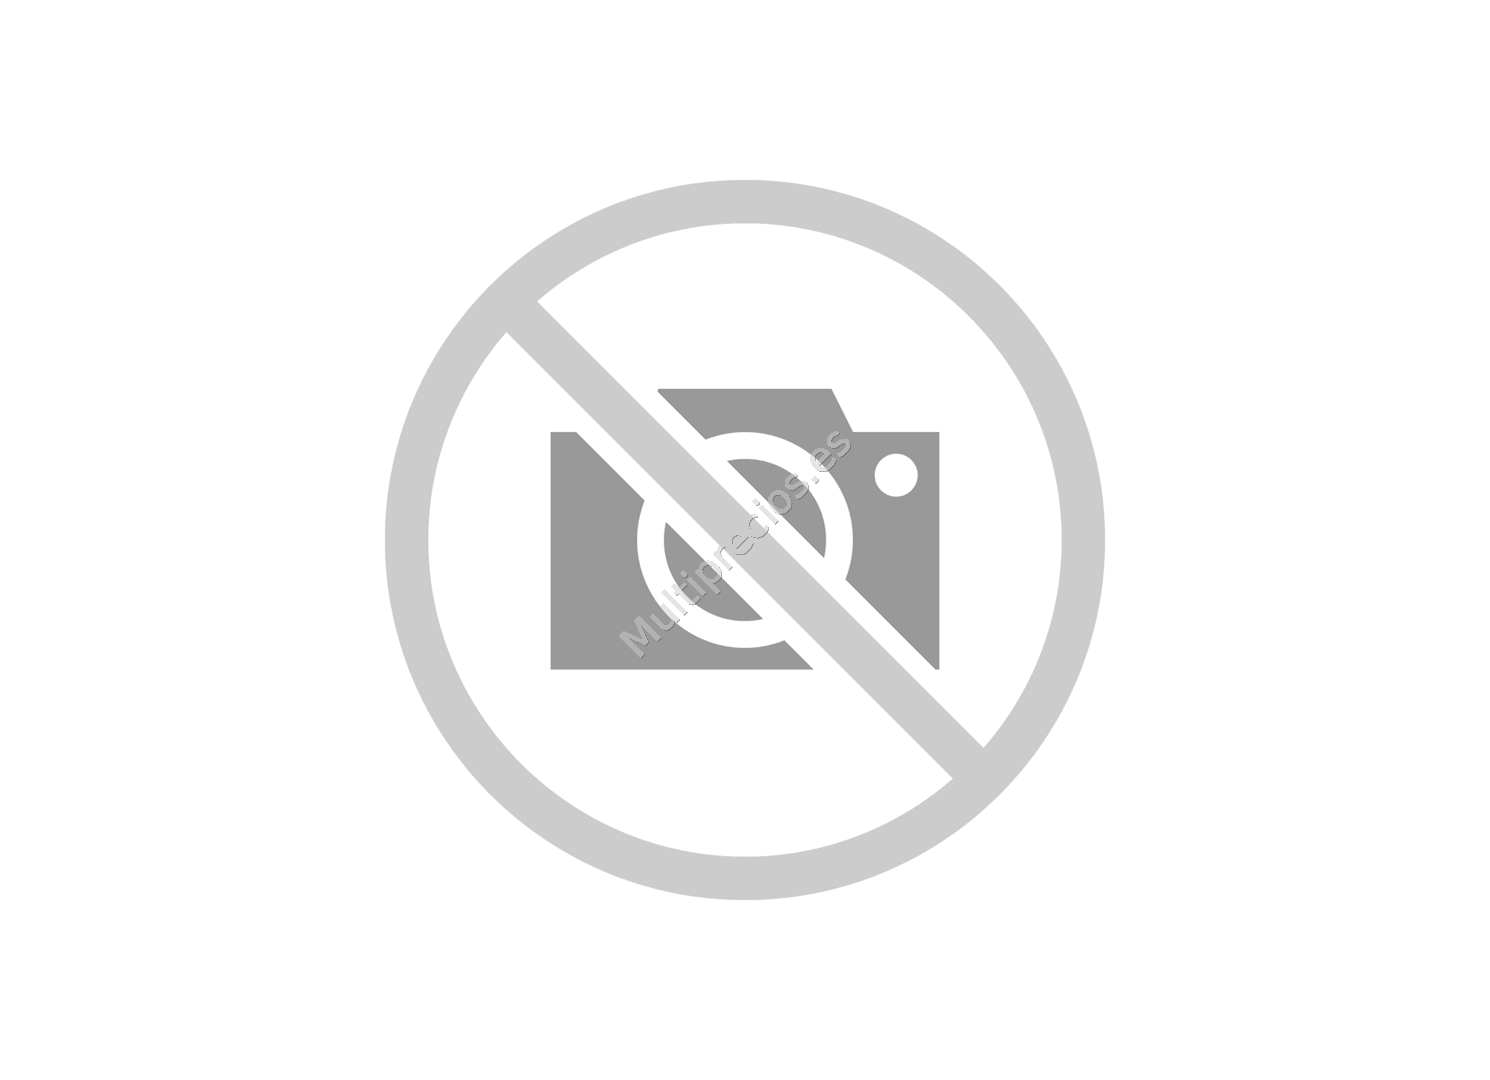 Tubo crema calzado marron 50ml